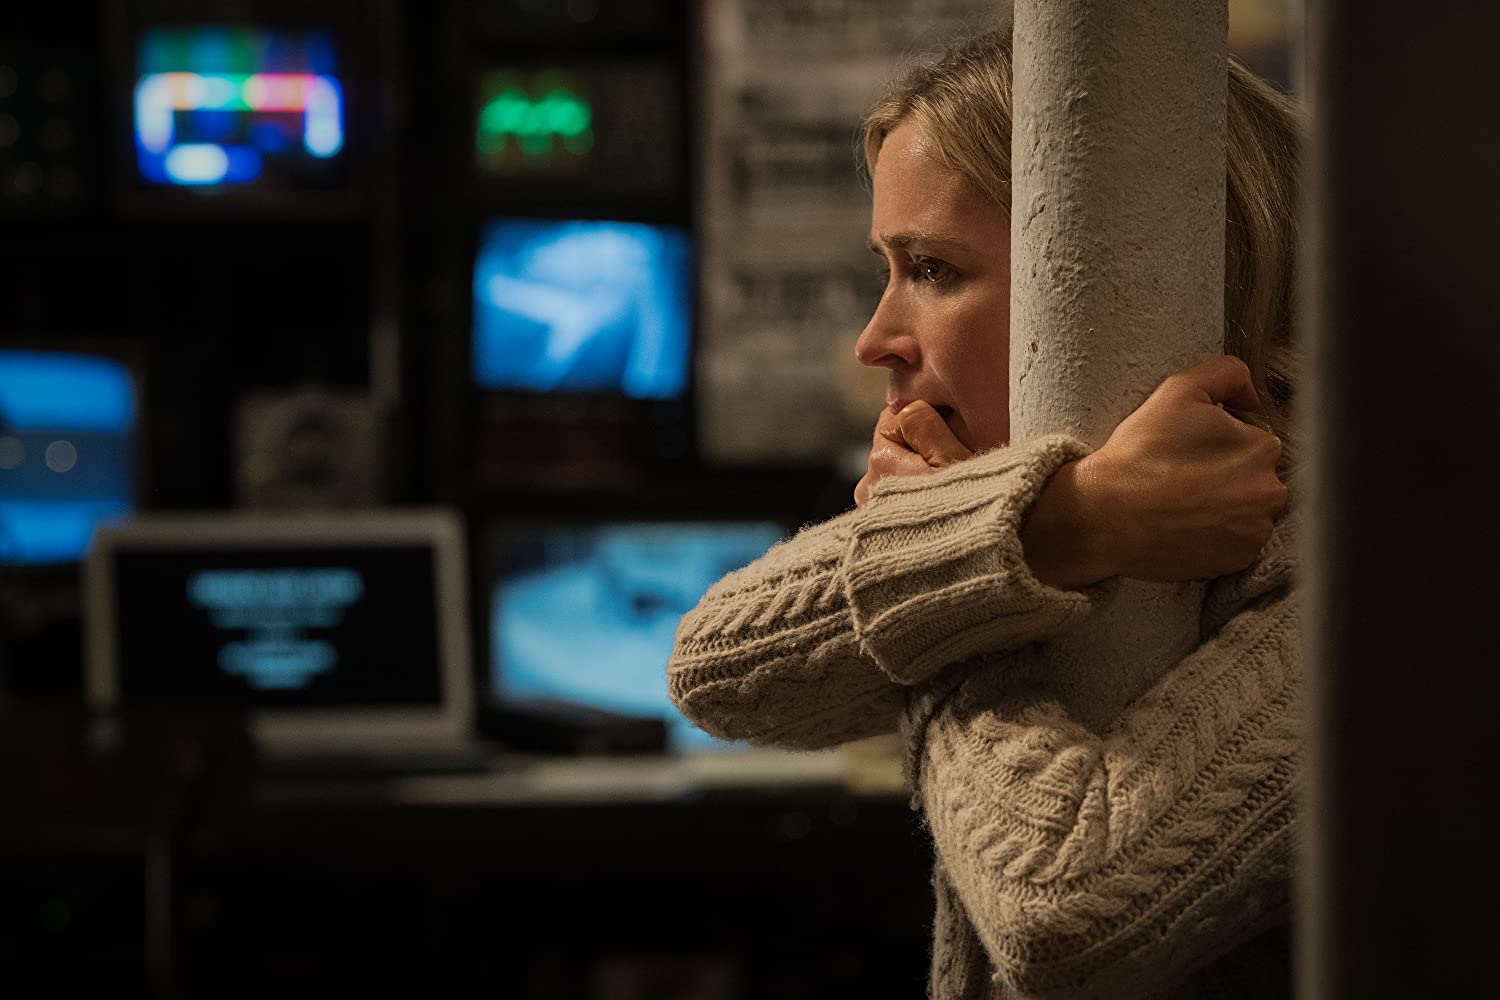 Emily Blunt in A Quiet Place (2018)